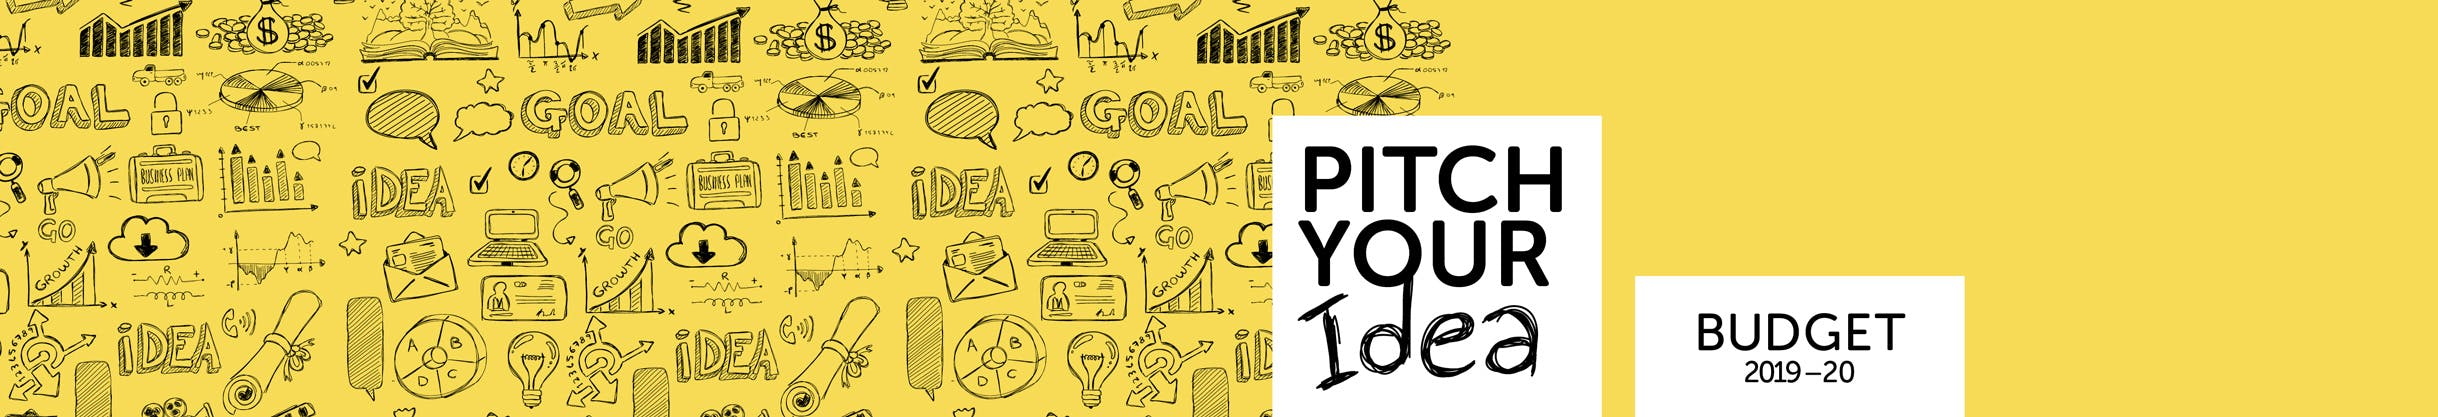 Pitch Your Idea - Budget 2019-20